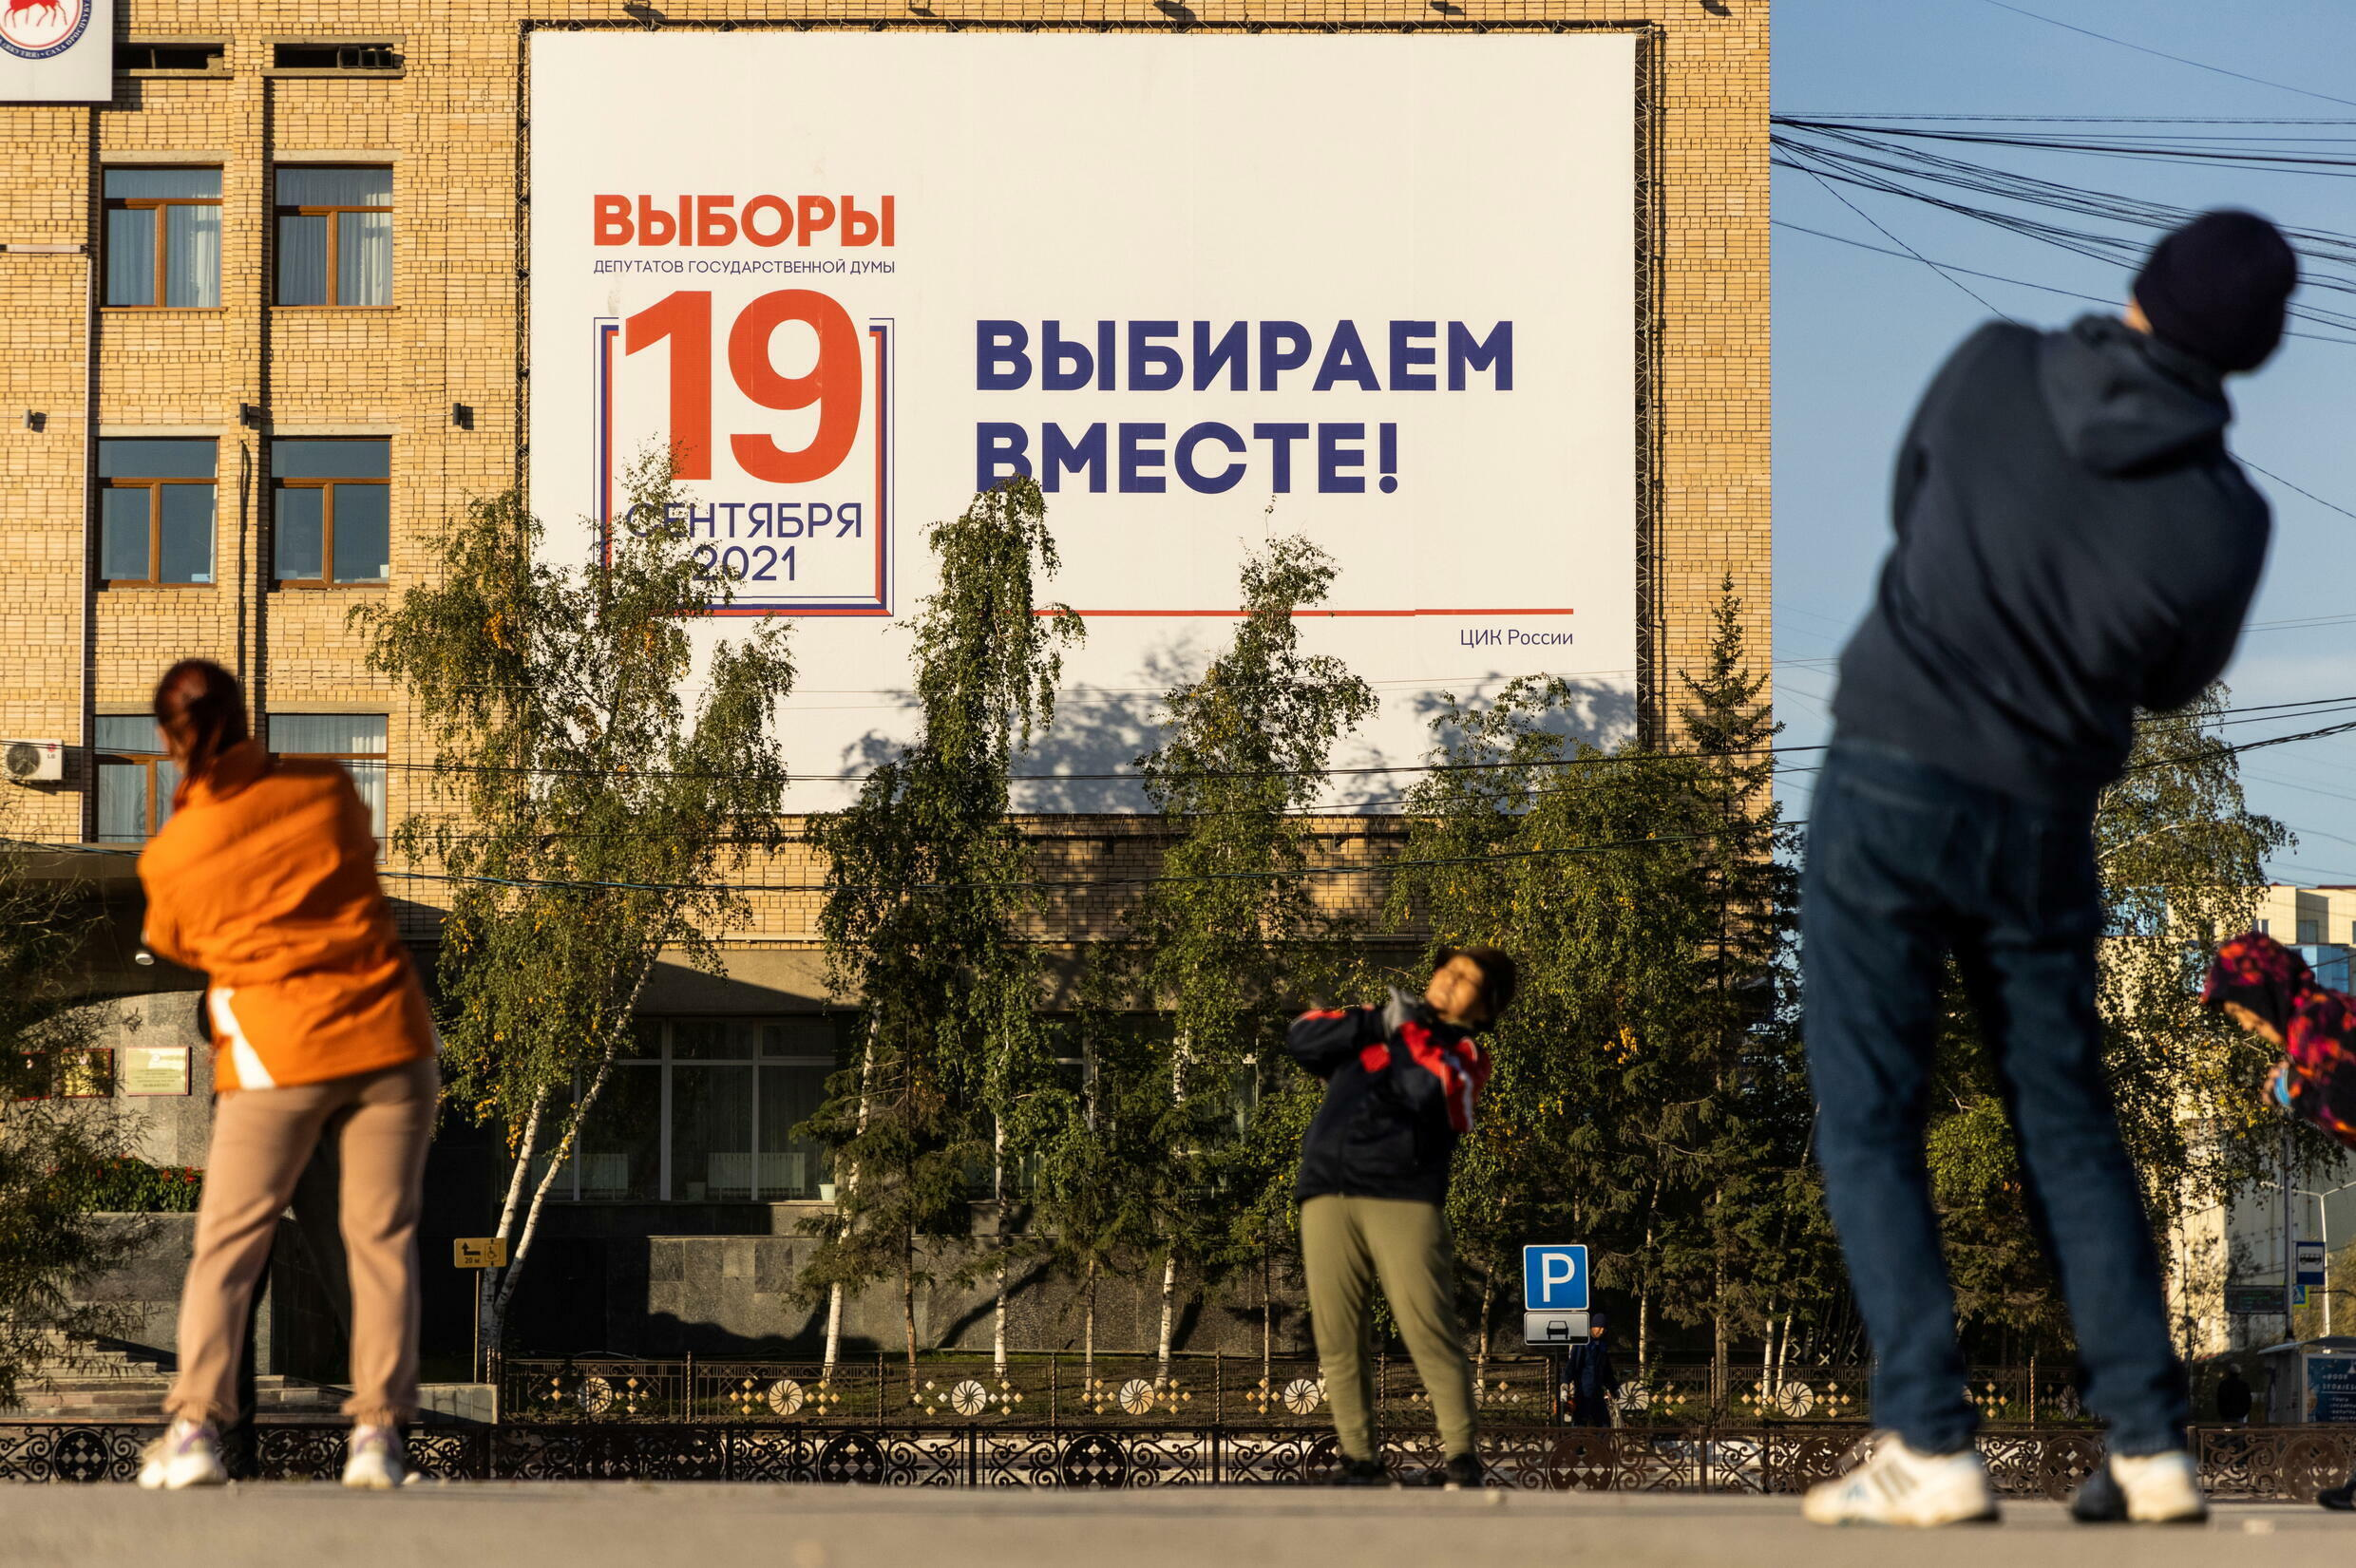 2021-09-07T165911Z_274451647_RC2MKP9ZKX8D_RTRMADP_3_RUSSIA-ELECTION (1)